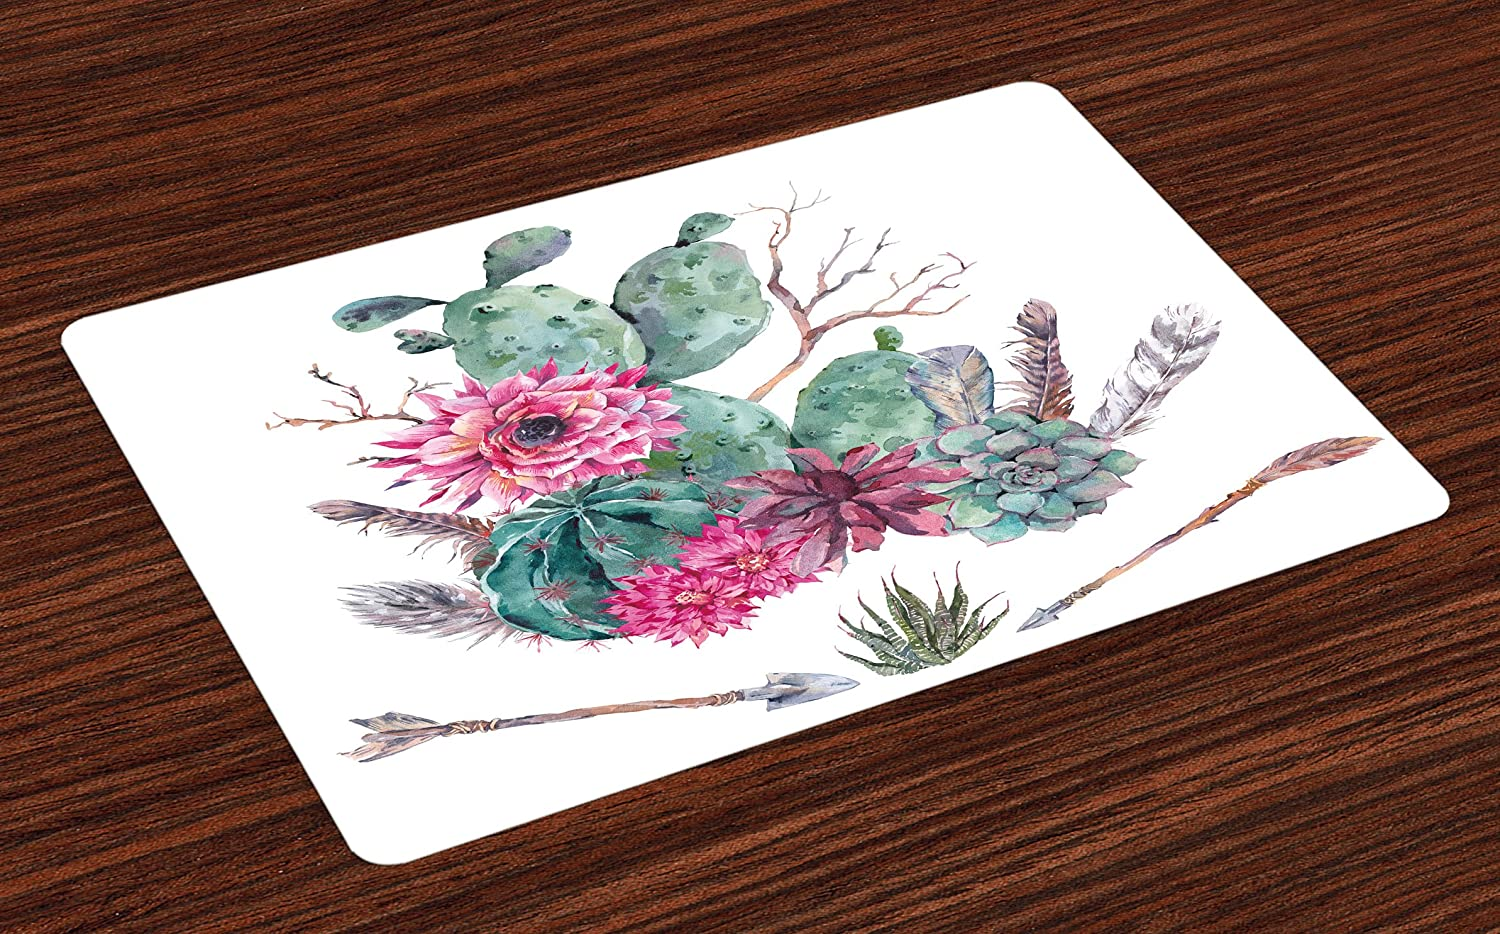 Ambesonne Cactus Place Mats Set of 4, Exotic Natural Vintage Style Watercolor Bouquet Bohemian Arizona Vegetation, Washable Fabric Placemats for Dining Room Kitchen Table Decor, Green Pink